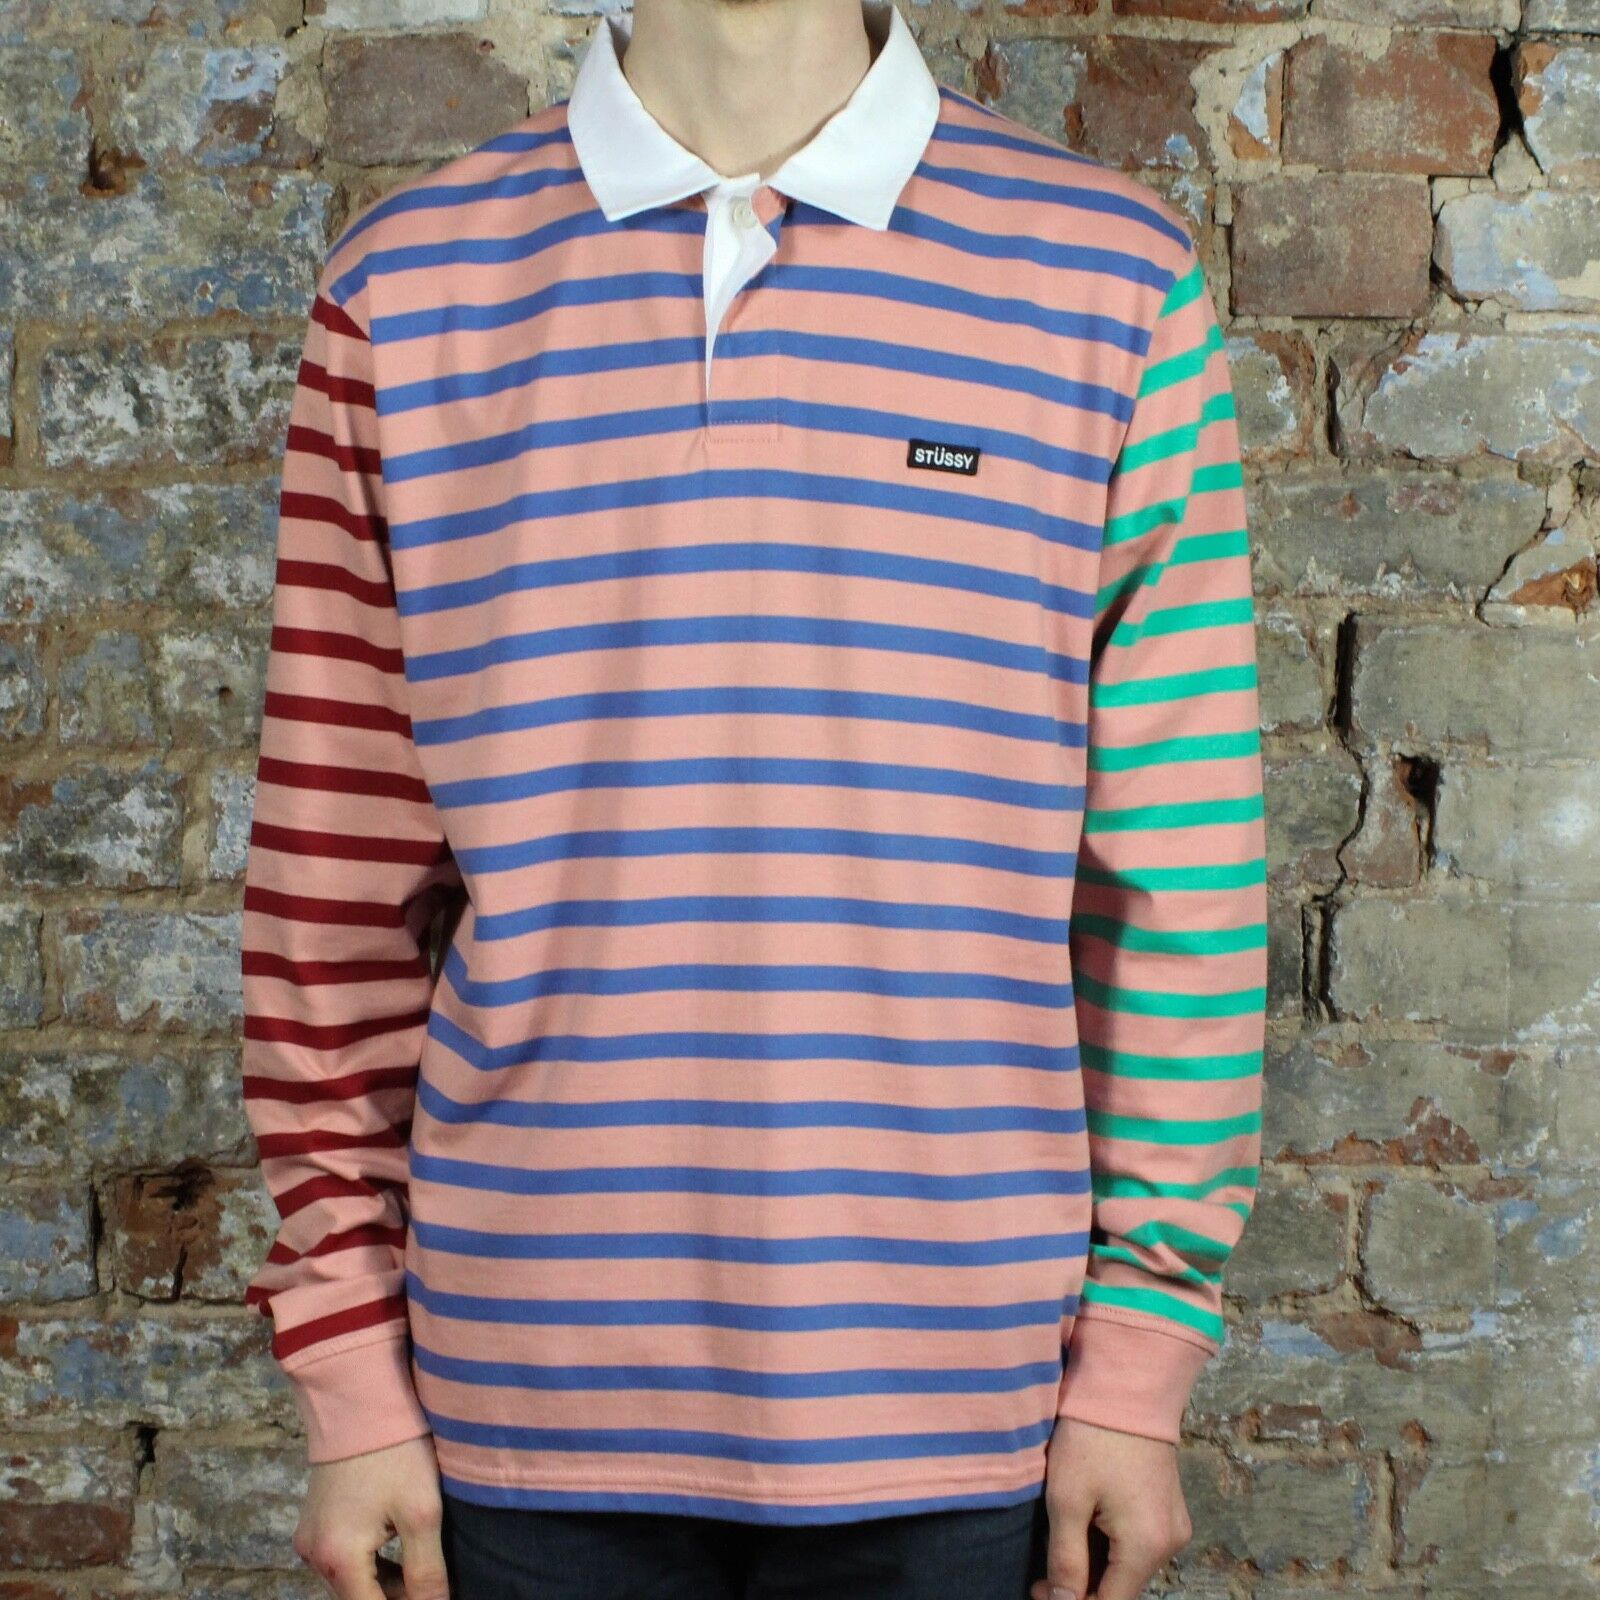 d8425d8d13 Details about Stussy Jonah Stripe Rugby Long Sleeve T-Shirt Top New in Pink  in size S,M,L